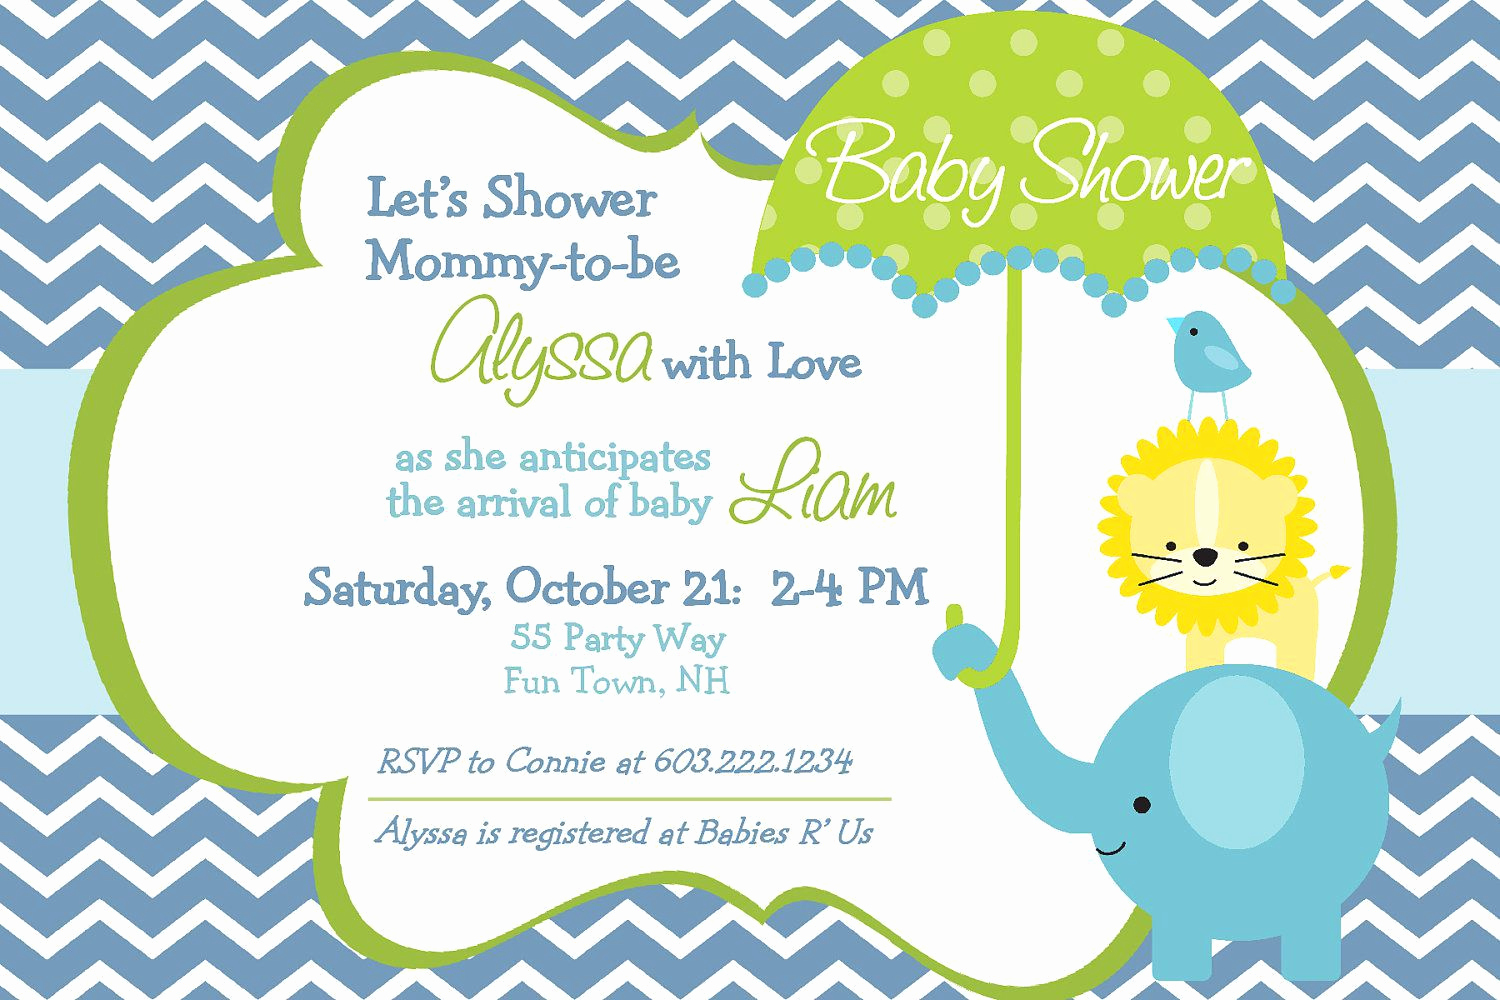 Baby Shower Invitation themes Unique Baby Shower Invitation Templates Baby Shower Invitation